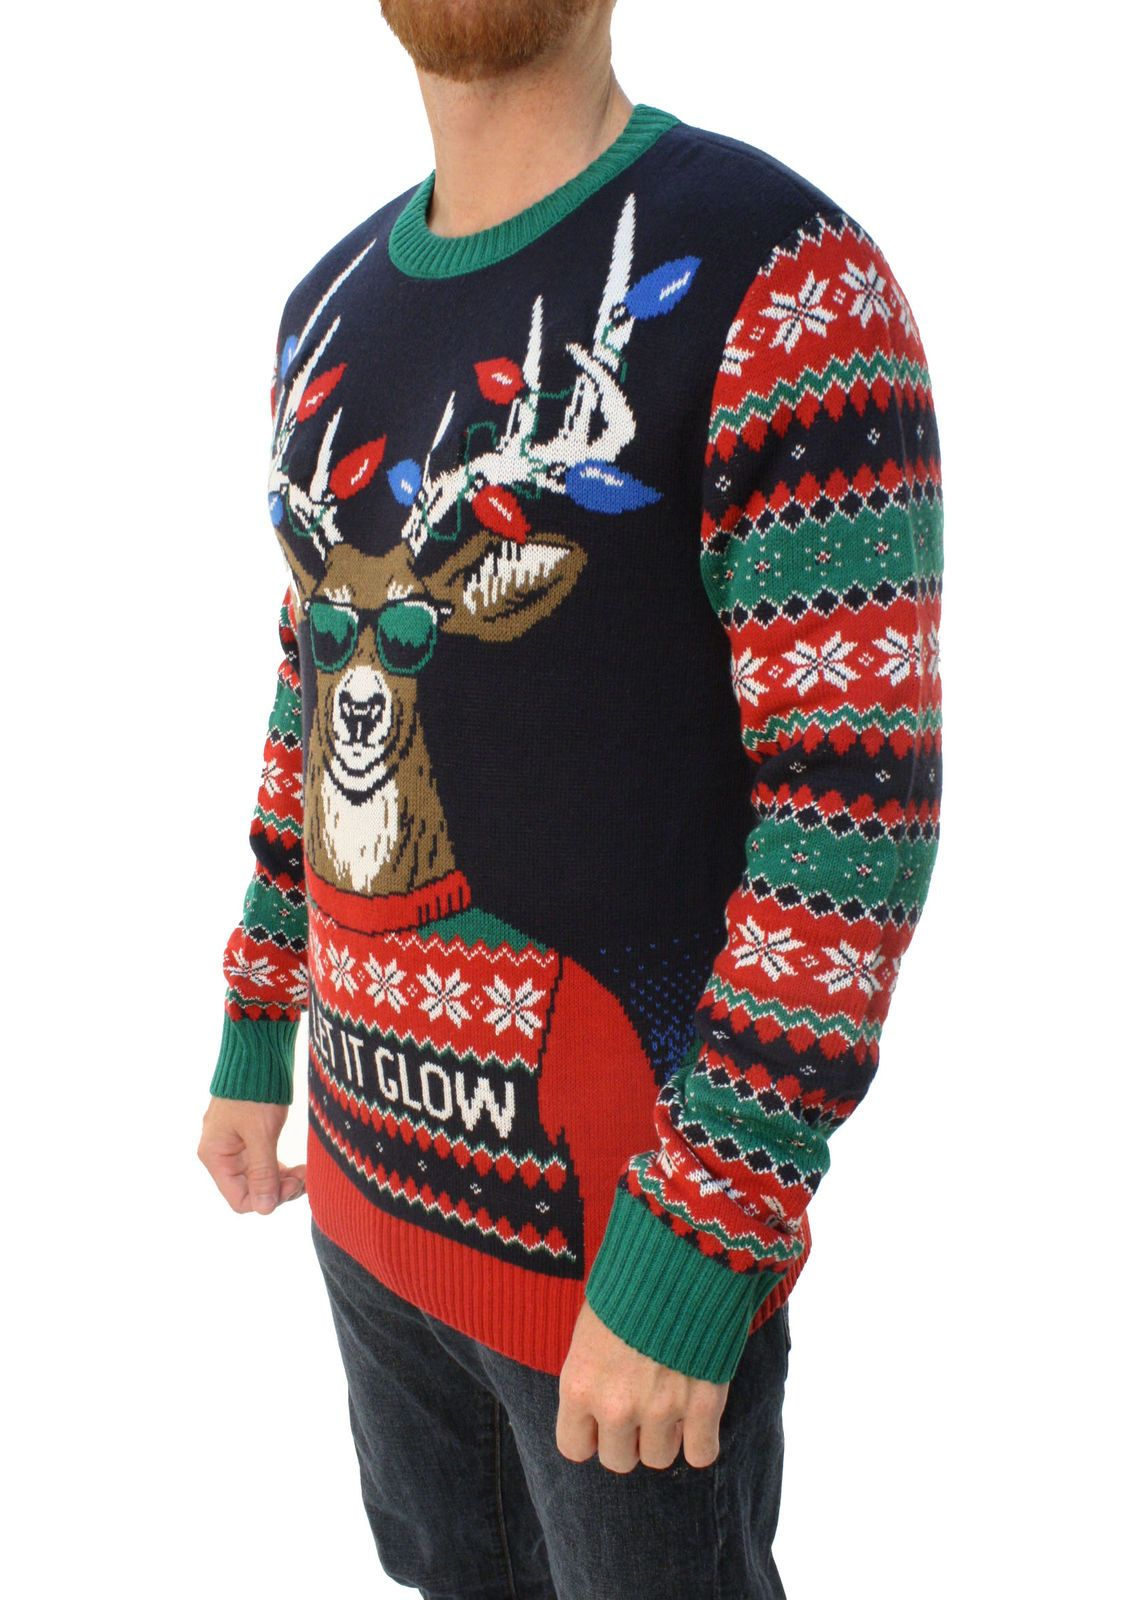 67446e9889706 Ugly Christmas Sweater Men s Let It Glow Reindeer LED Light Up Sweatshirt